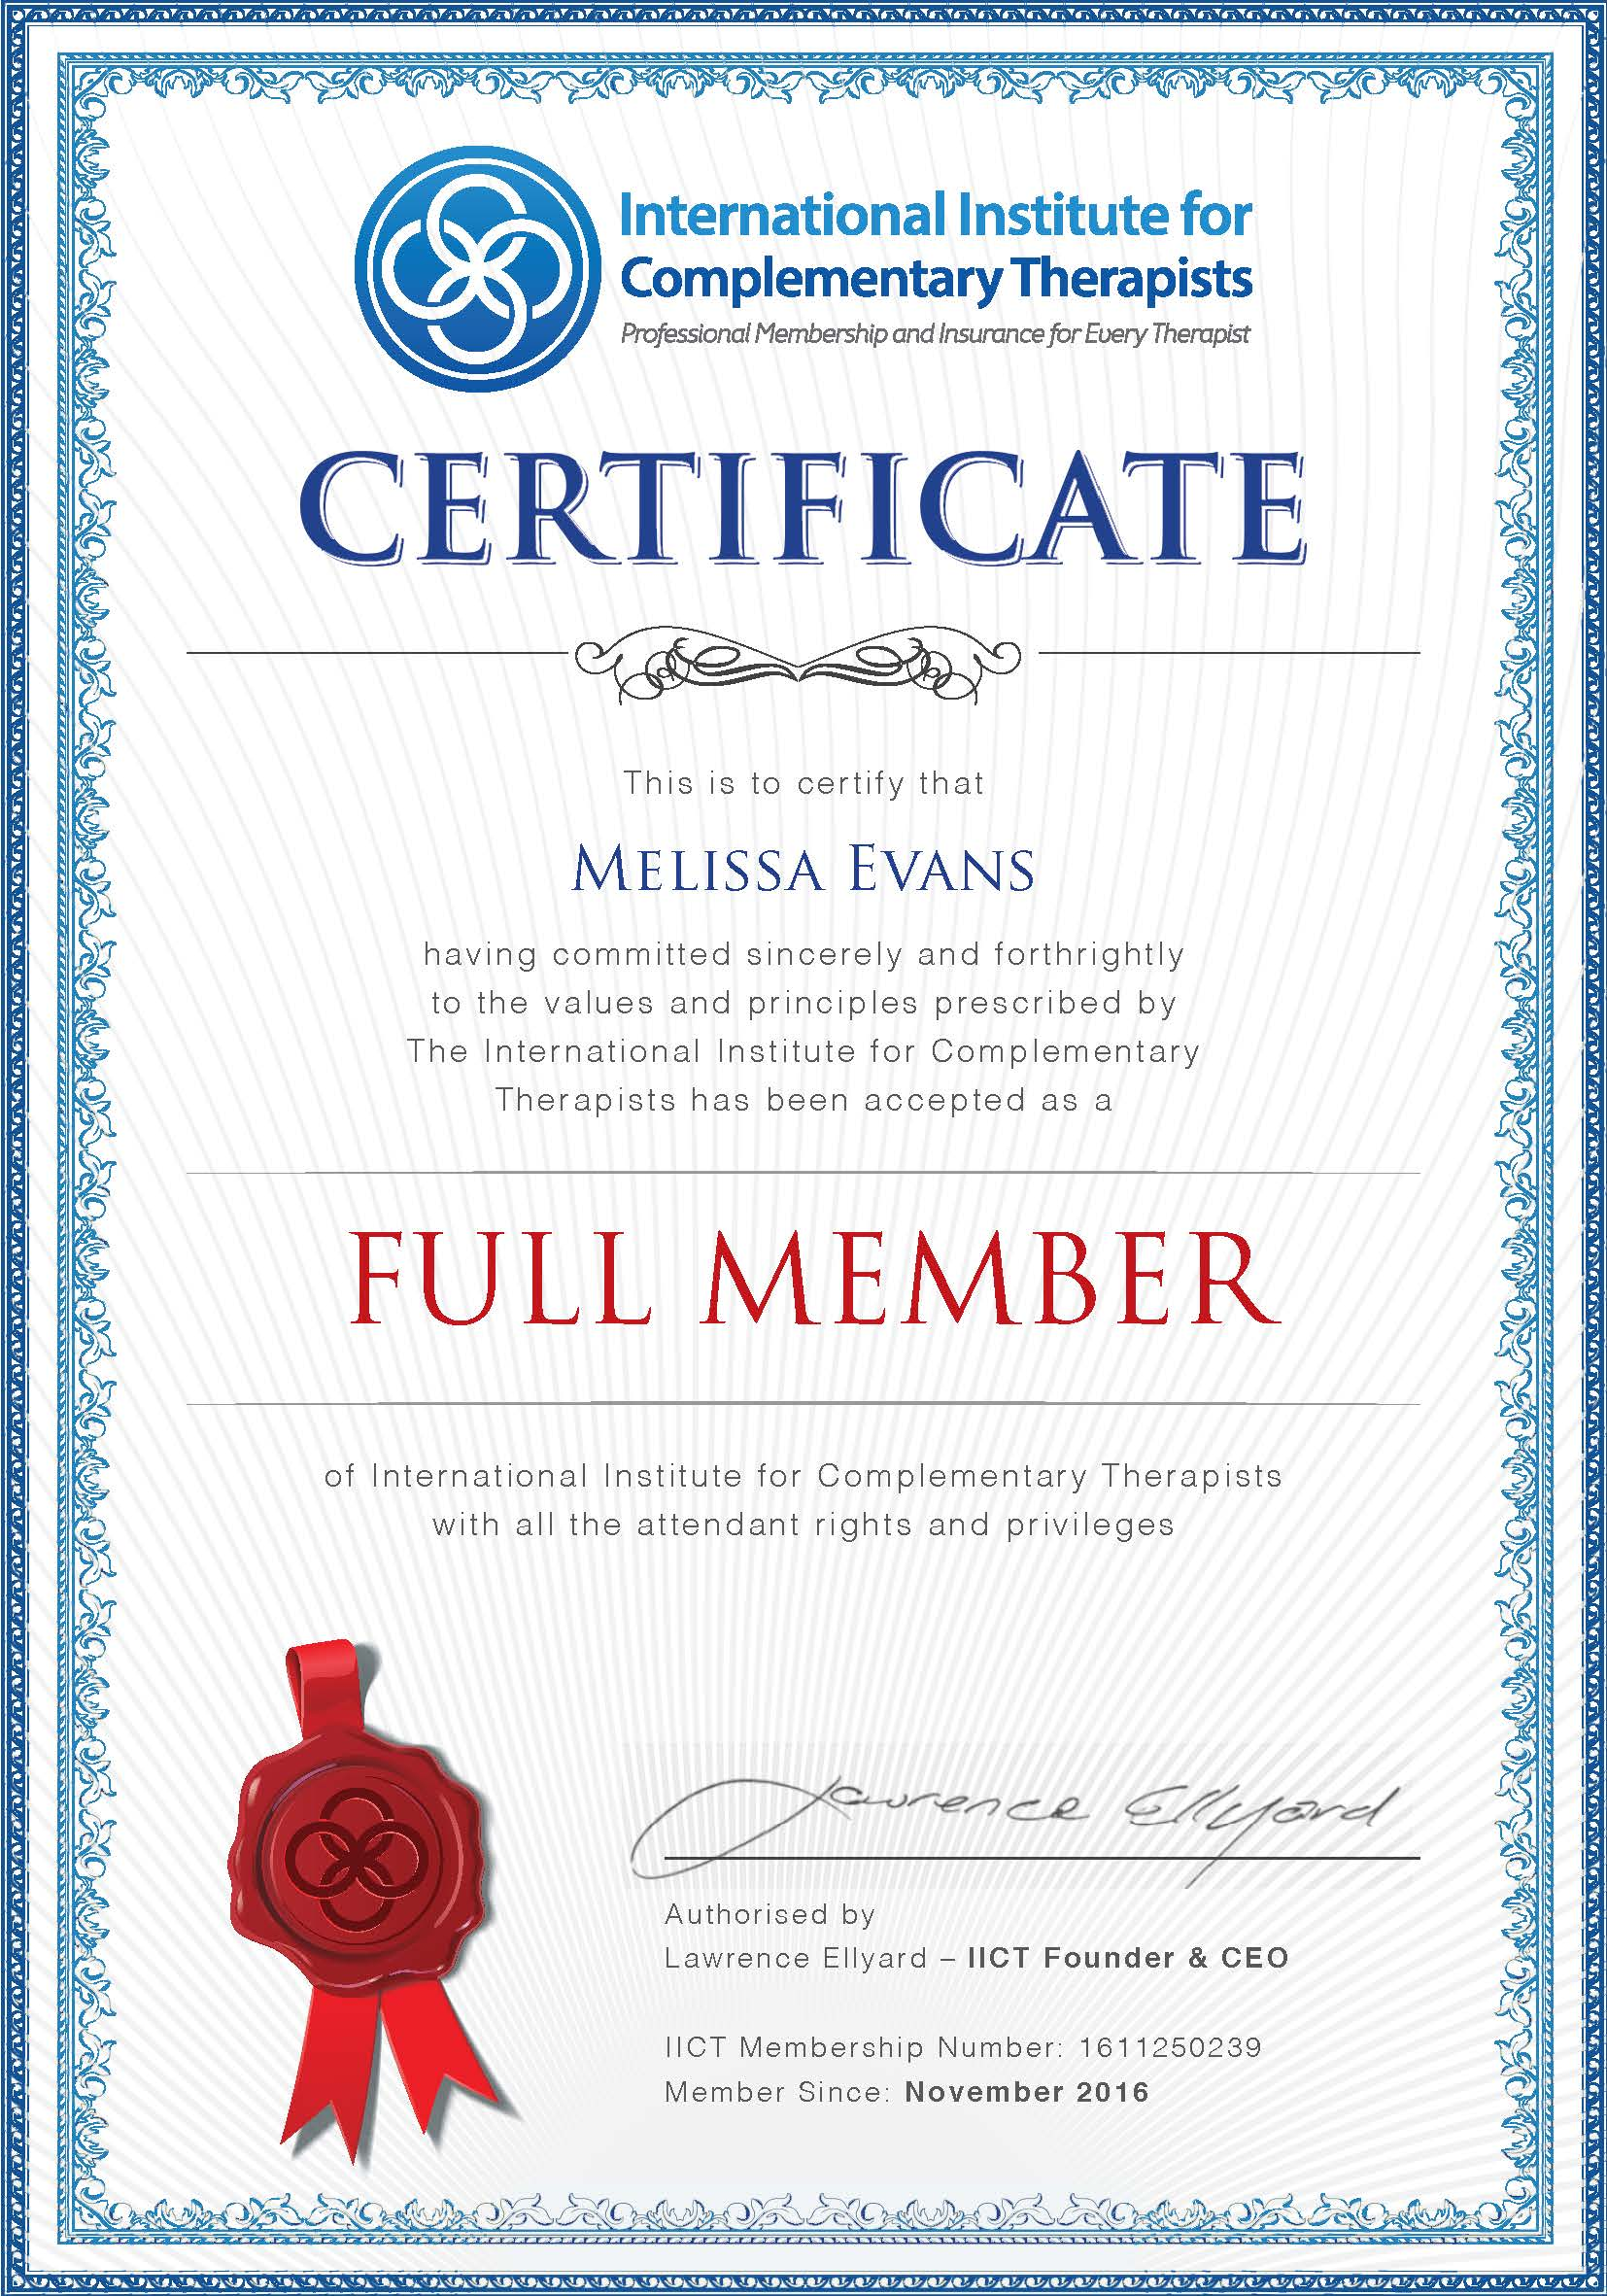 certificationimg.png